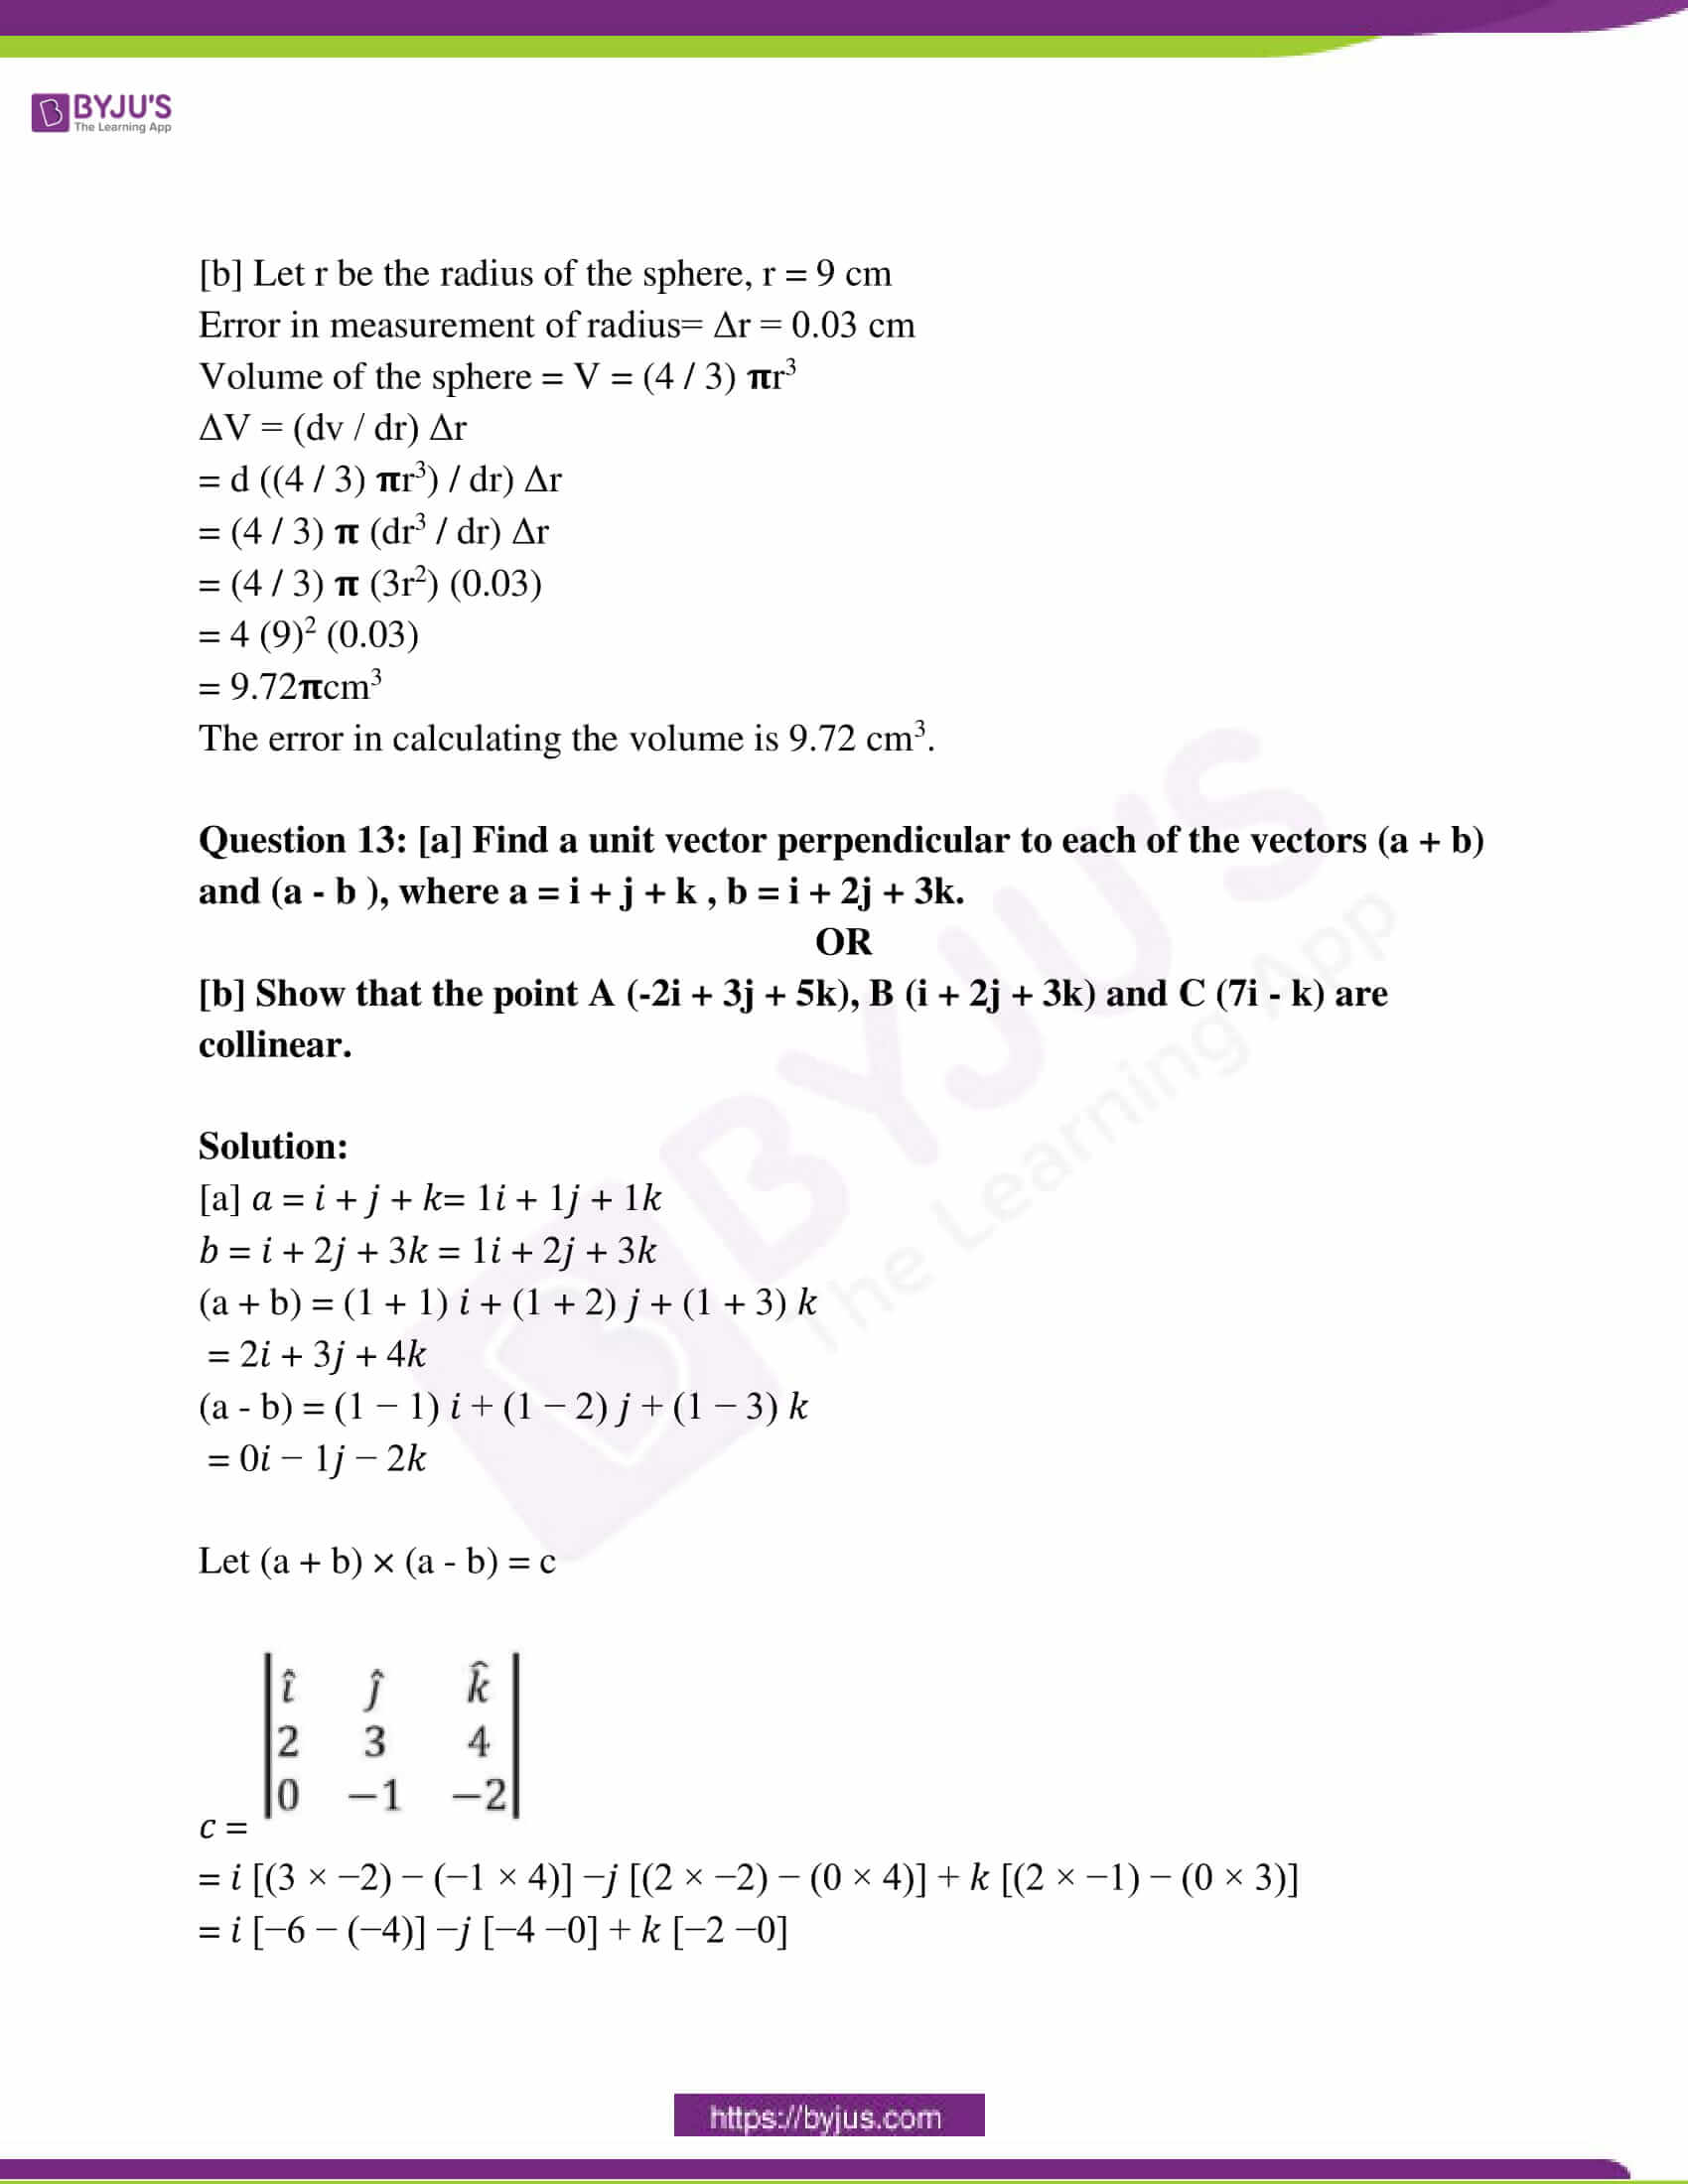 mp board class 12 questions and answers maths 2020 15